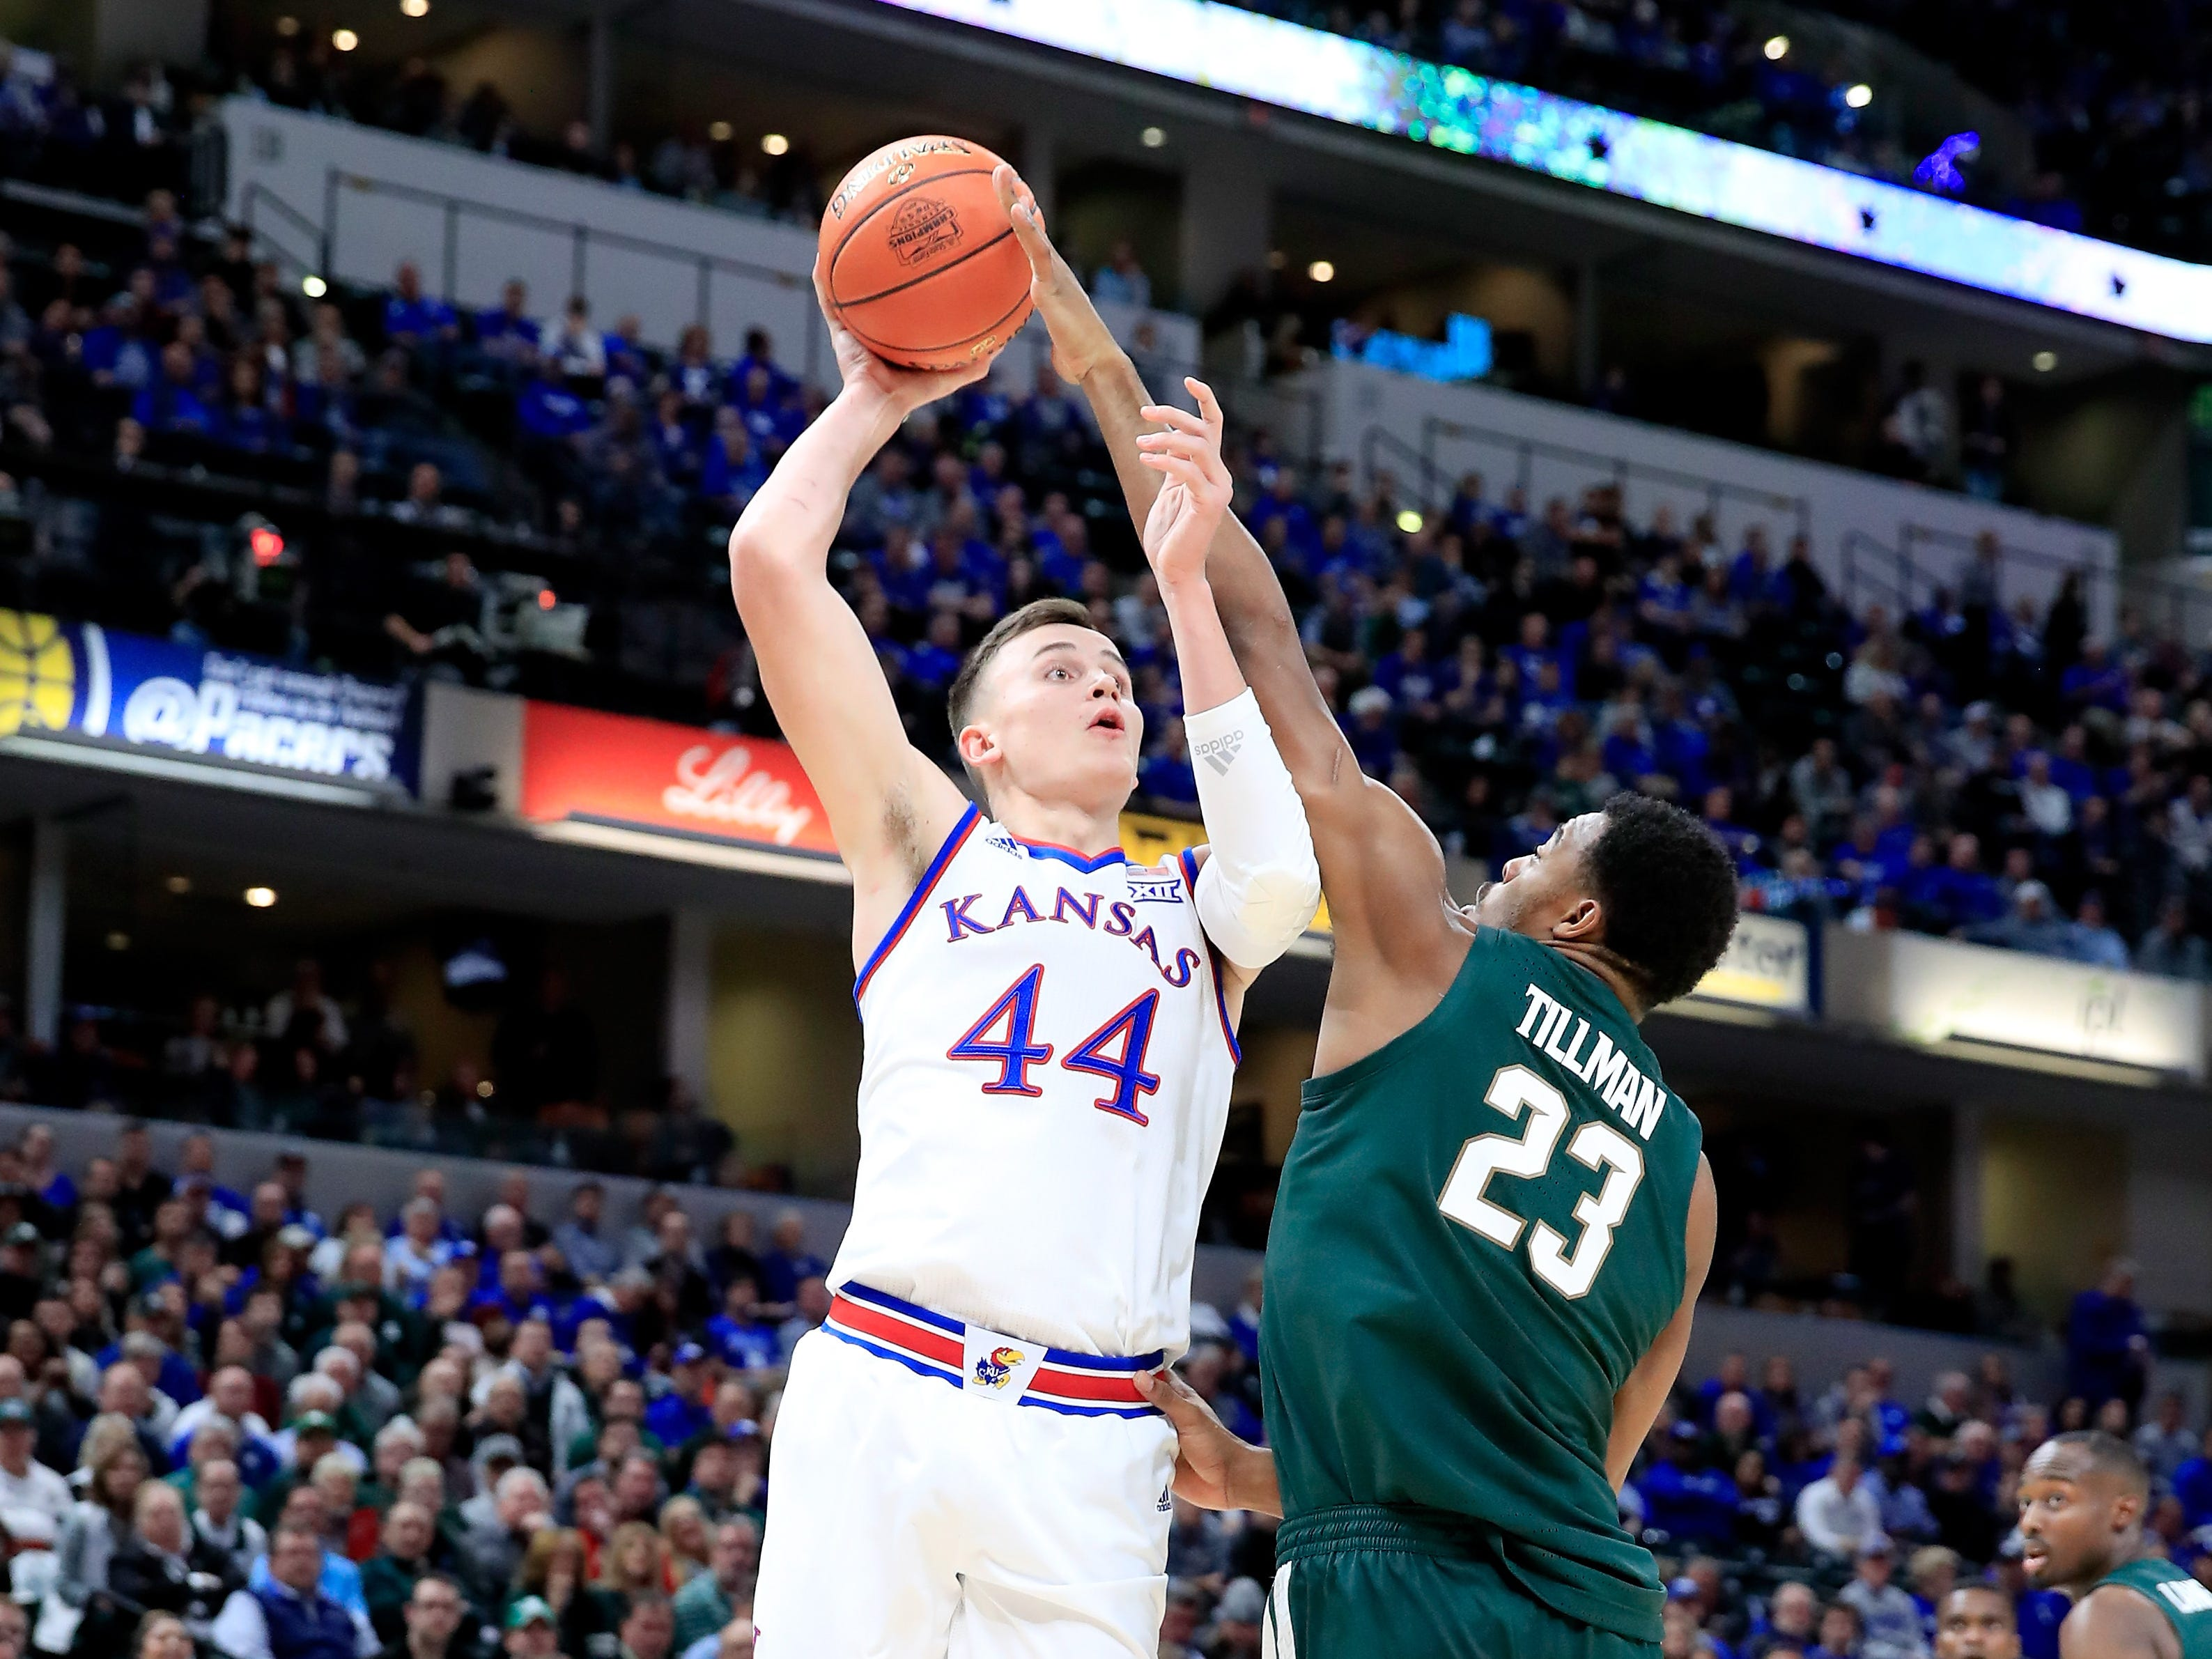 Mitch Lightfoot (44) of the Kansas Jayhawks shoots the ball against the Michigan State Spartans during the State Farm Champions Classic.